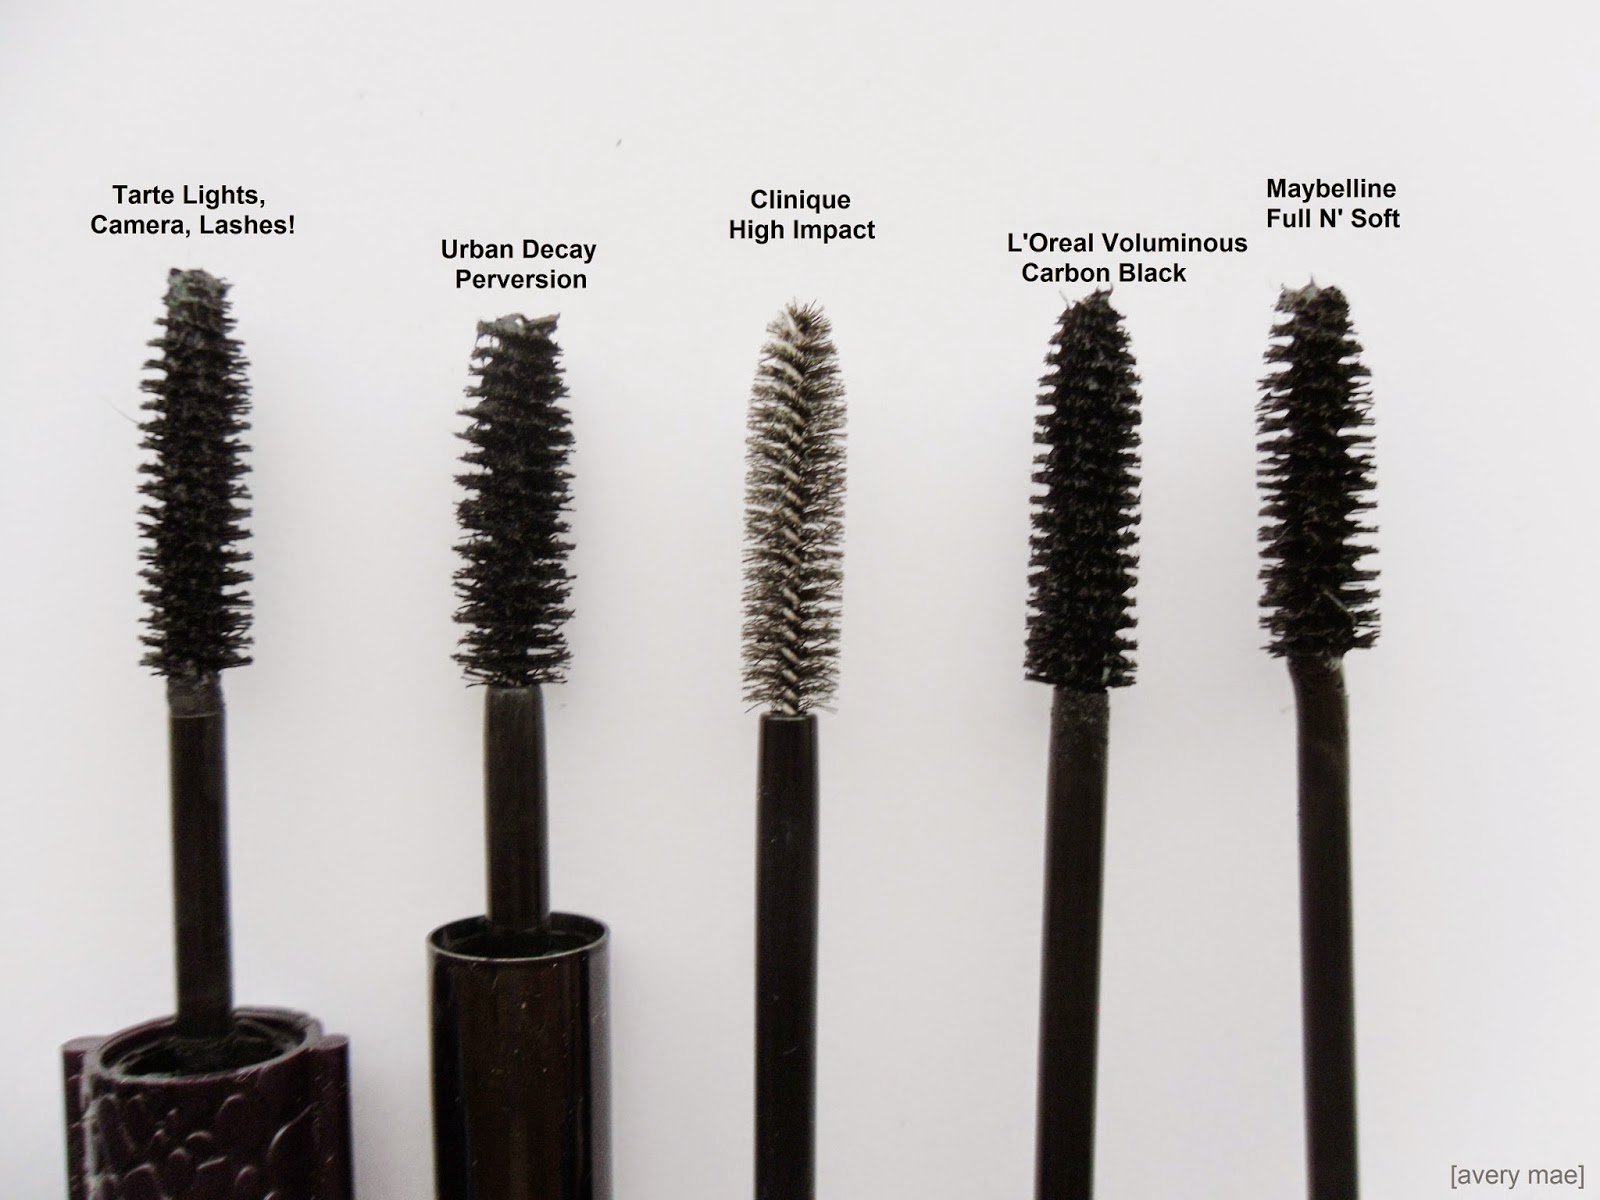 Lights, Camera, Lashes 4-in-1 mascara by Tarte #14